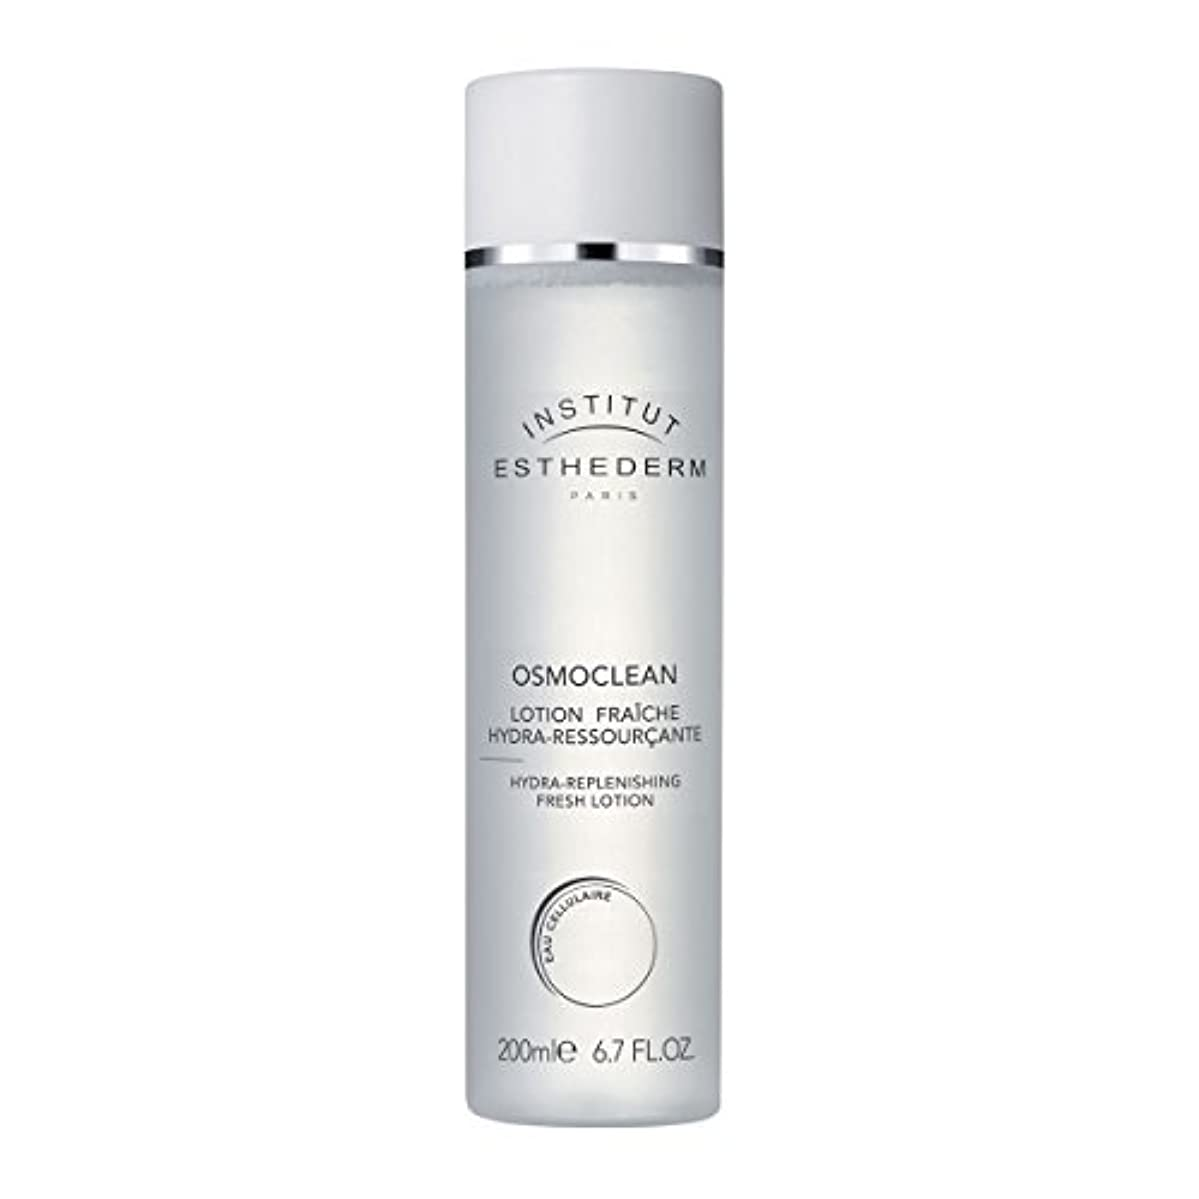 解決する失望させる雑品Institut Esthederm Osmoclean Hydra-replenishing Fresh Lotion 200ml [並行輸入品]